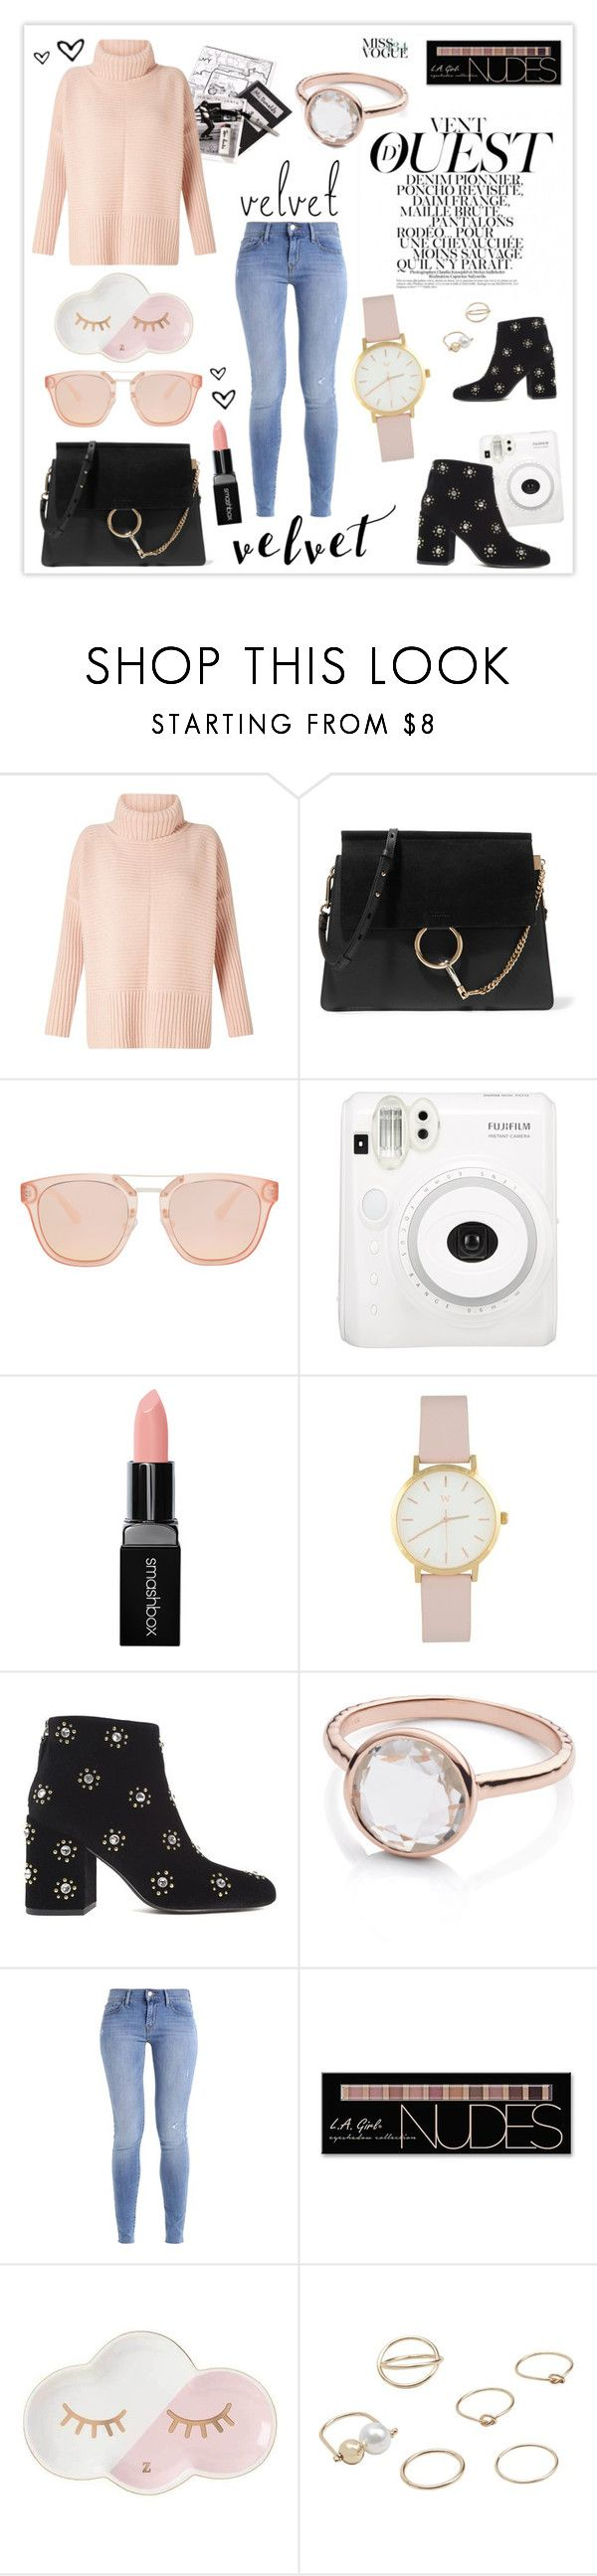 """""""Crushing on Velvet"""" by mars ❤ liked on Polyvore featuring Miss Selfridge, Chloé, Smashbox, Senso, Monica Vinader, Charlotte Russe and MANGO"""